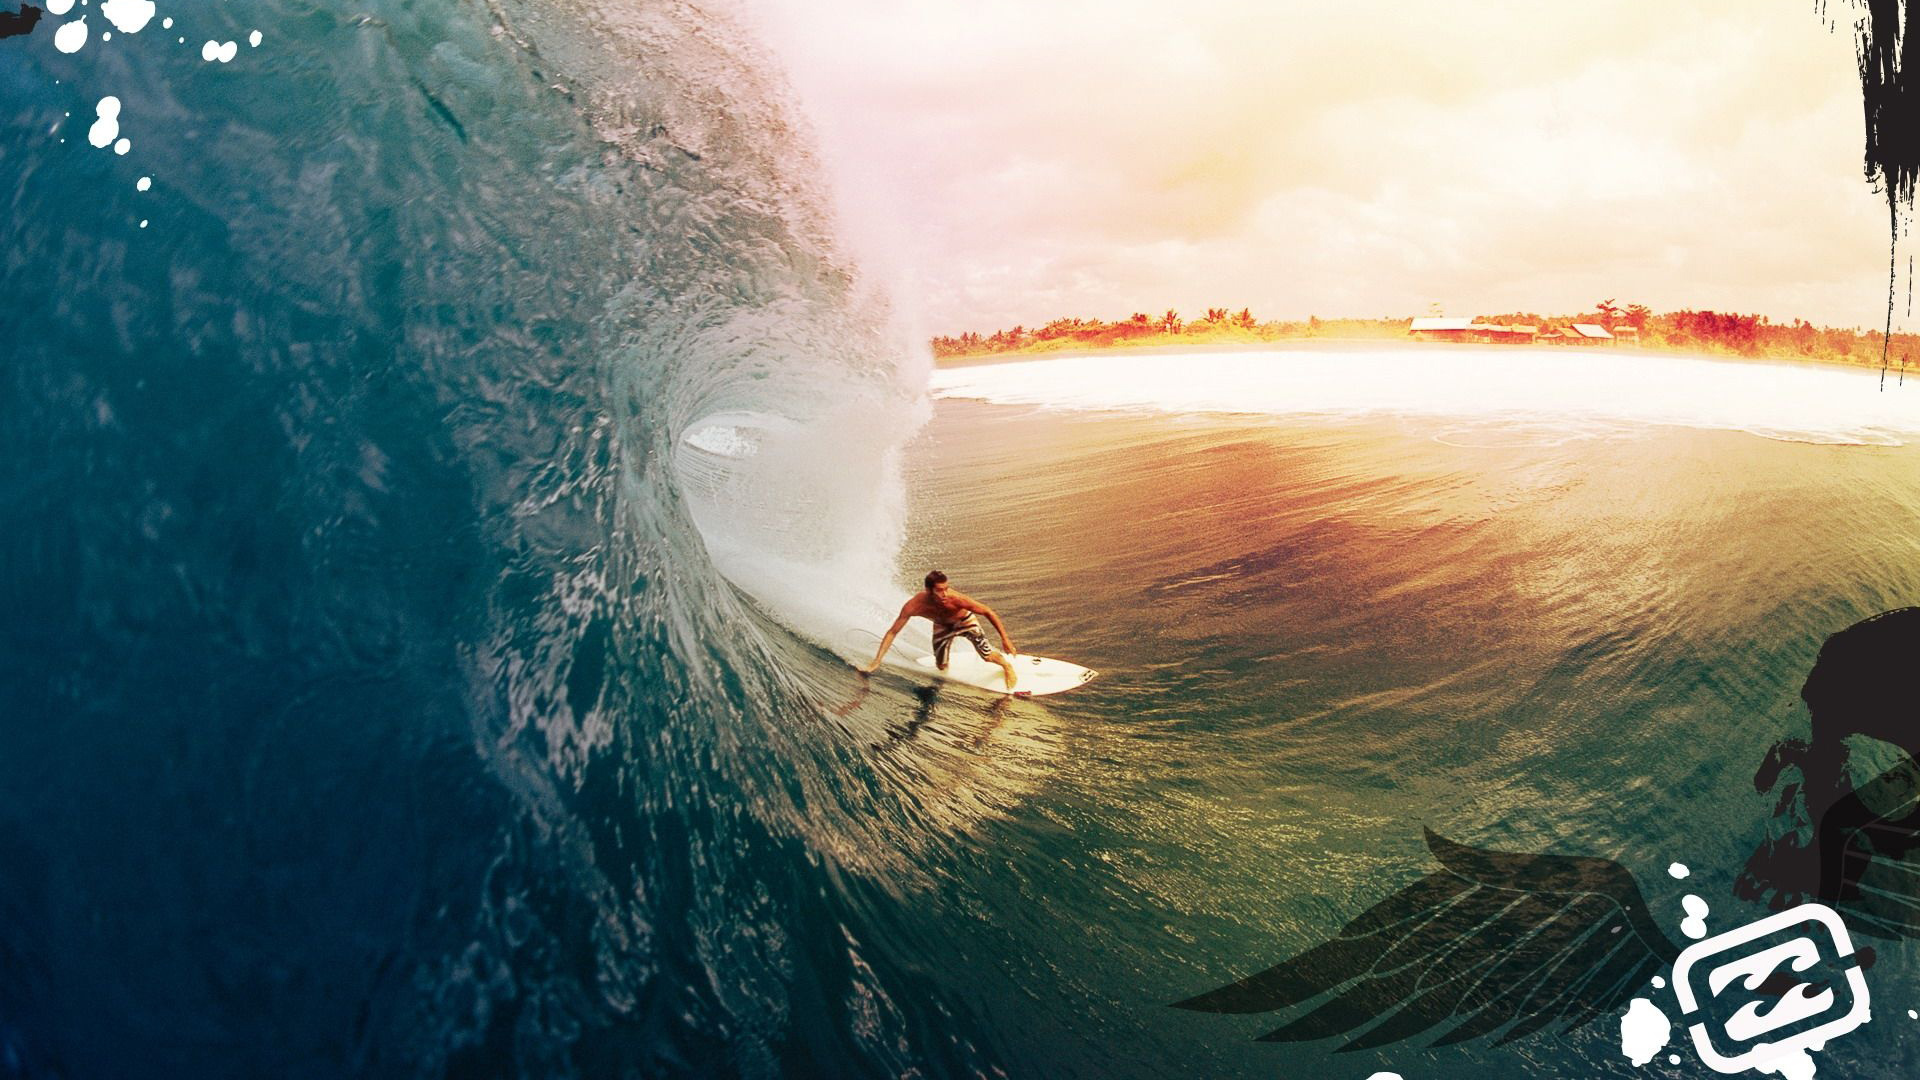 Surfer surfing 1080p Full HD desktop background 1920x1080